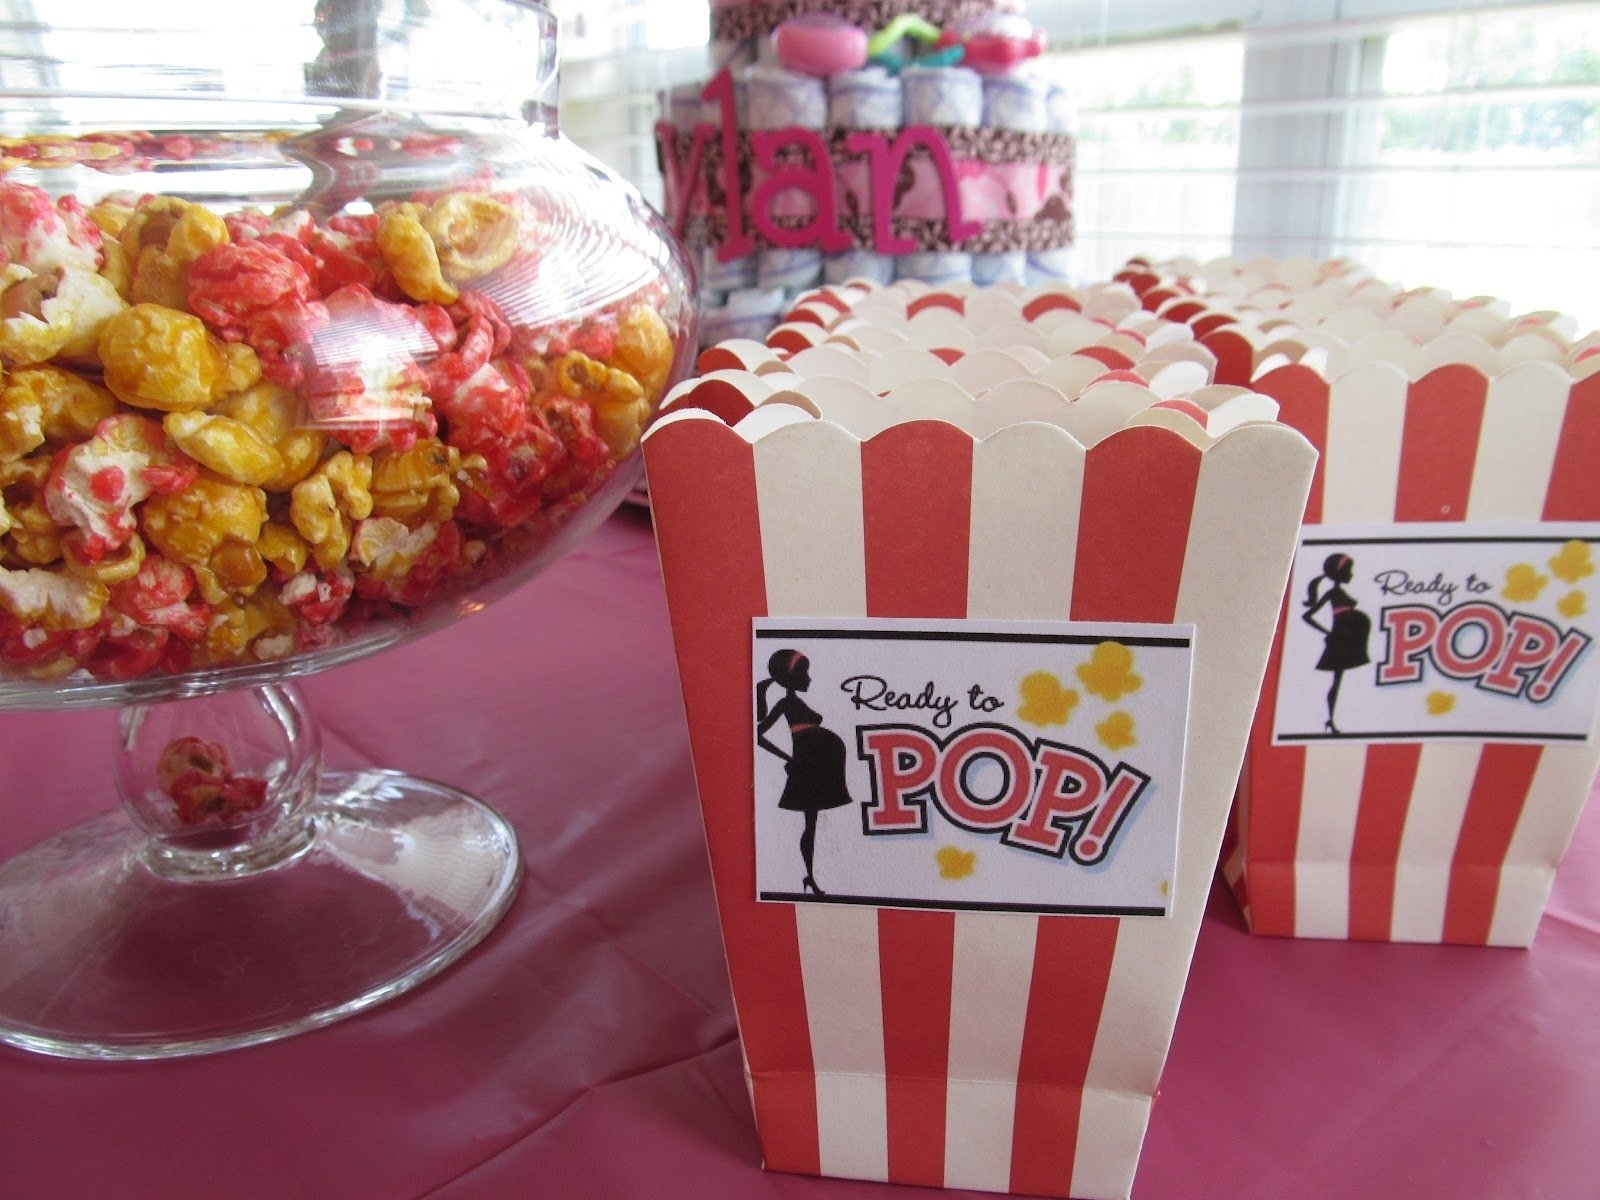 10 Attractive About To Pop Baby Shower Ideas incredible decoration ready to pop baby shower ideas lovely design 2020